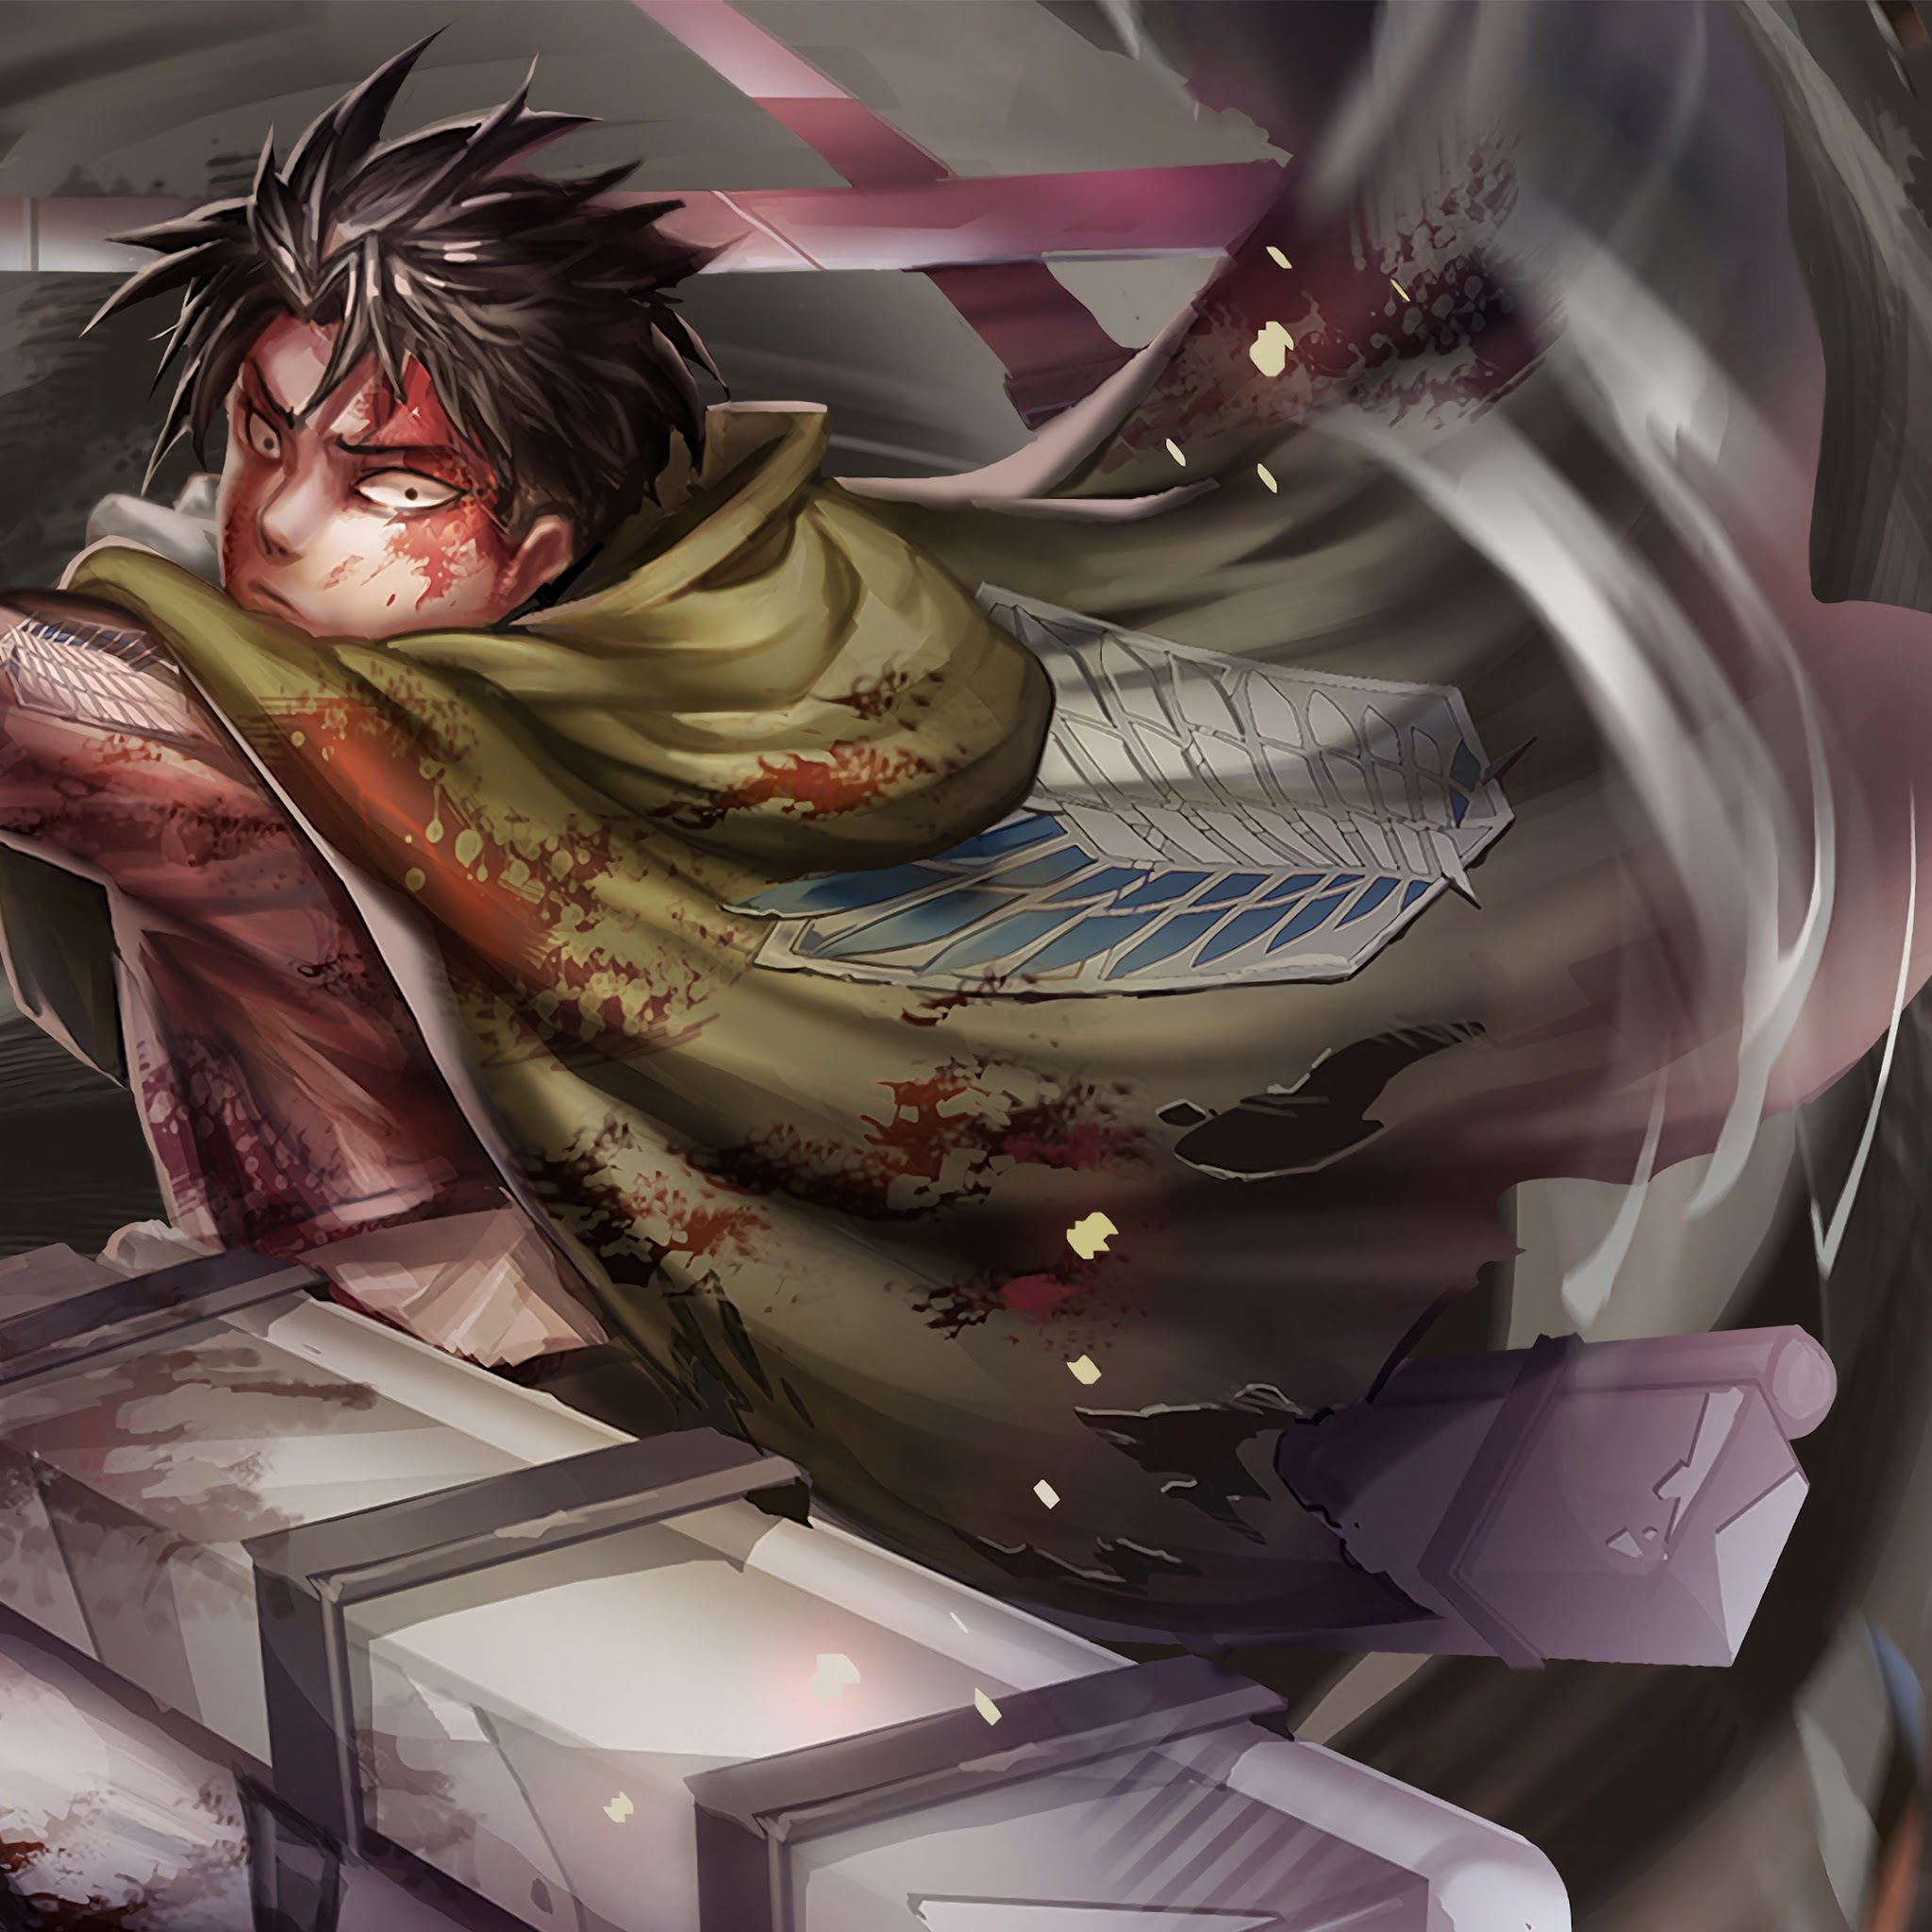 Here's how to change the wallpaper on your iphone or ipad and make it feel like a new device again. Levi, Attack on Titan, 4K, #25 Wallpaper